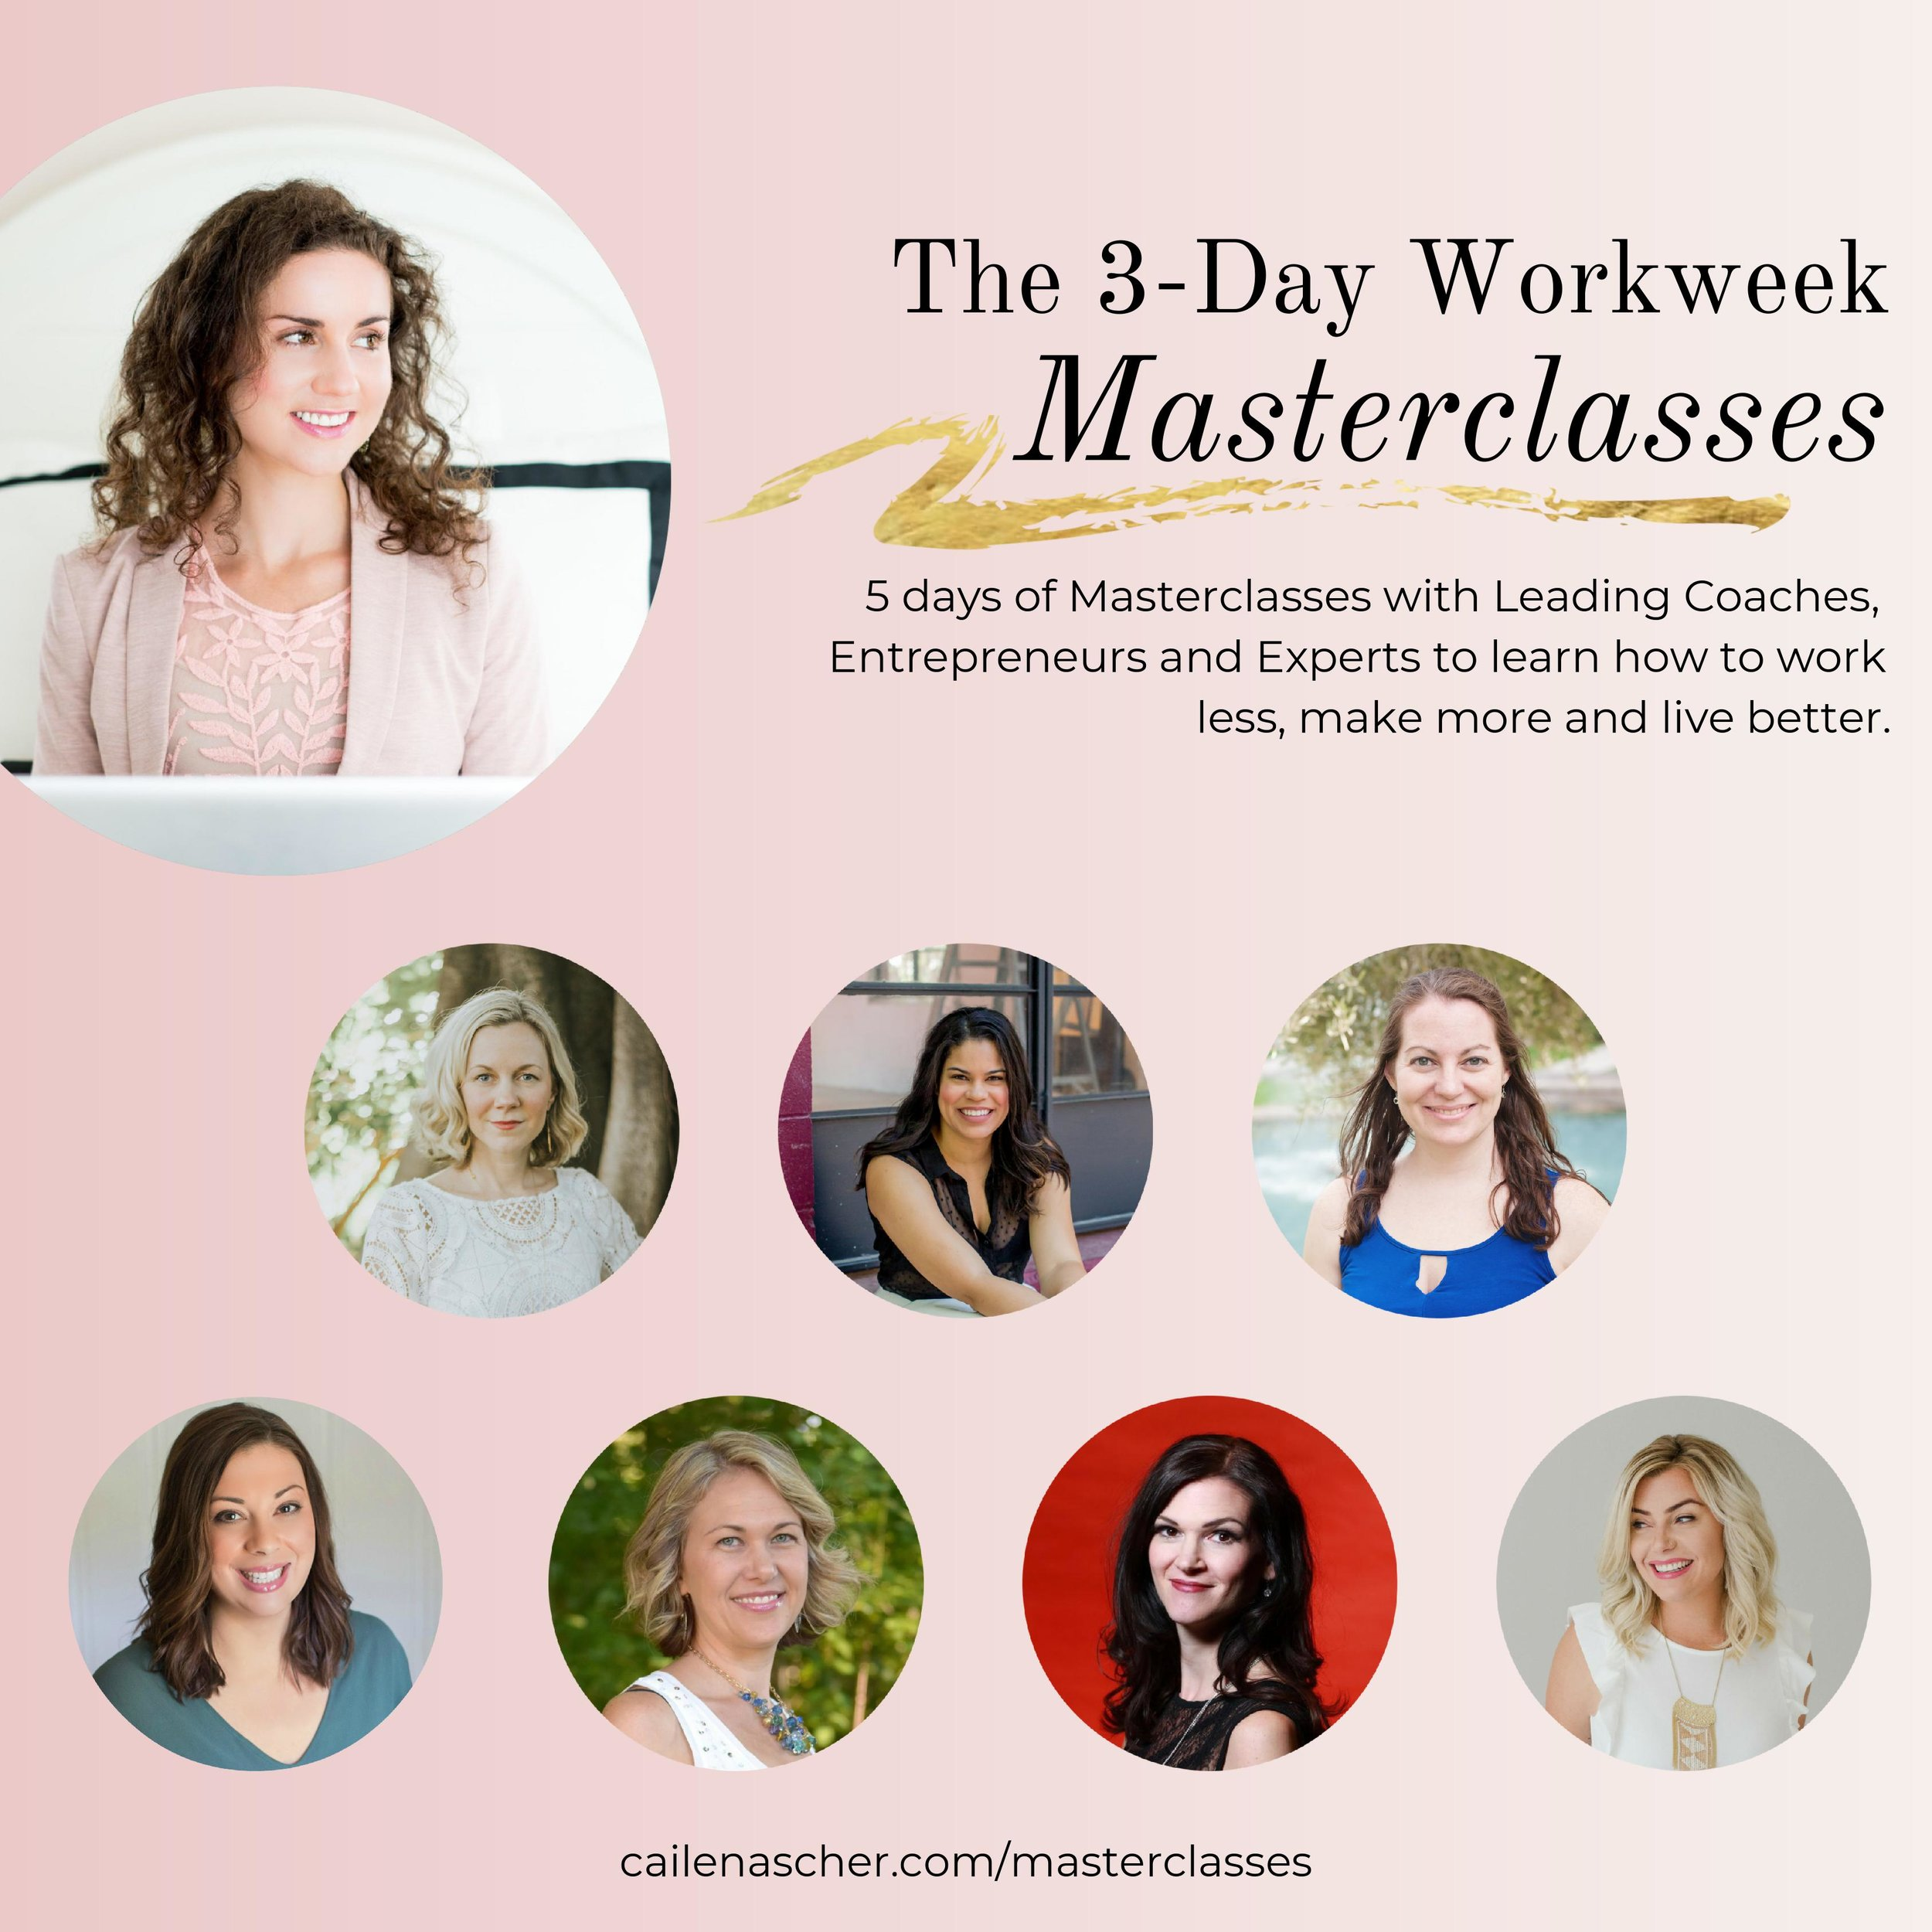 Cailen Ascher - 3DWW Masterclasses - General Promotion - Instagram Post 01.jpg